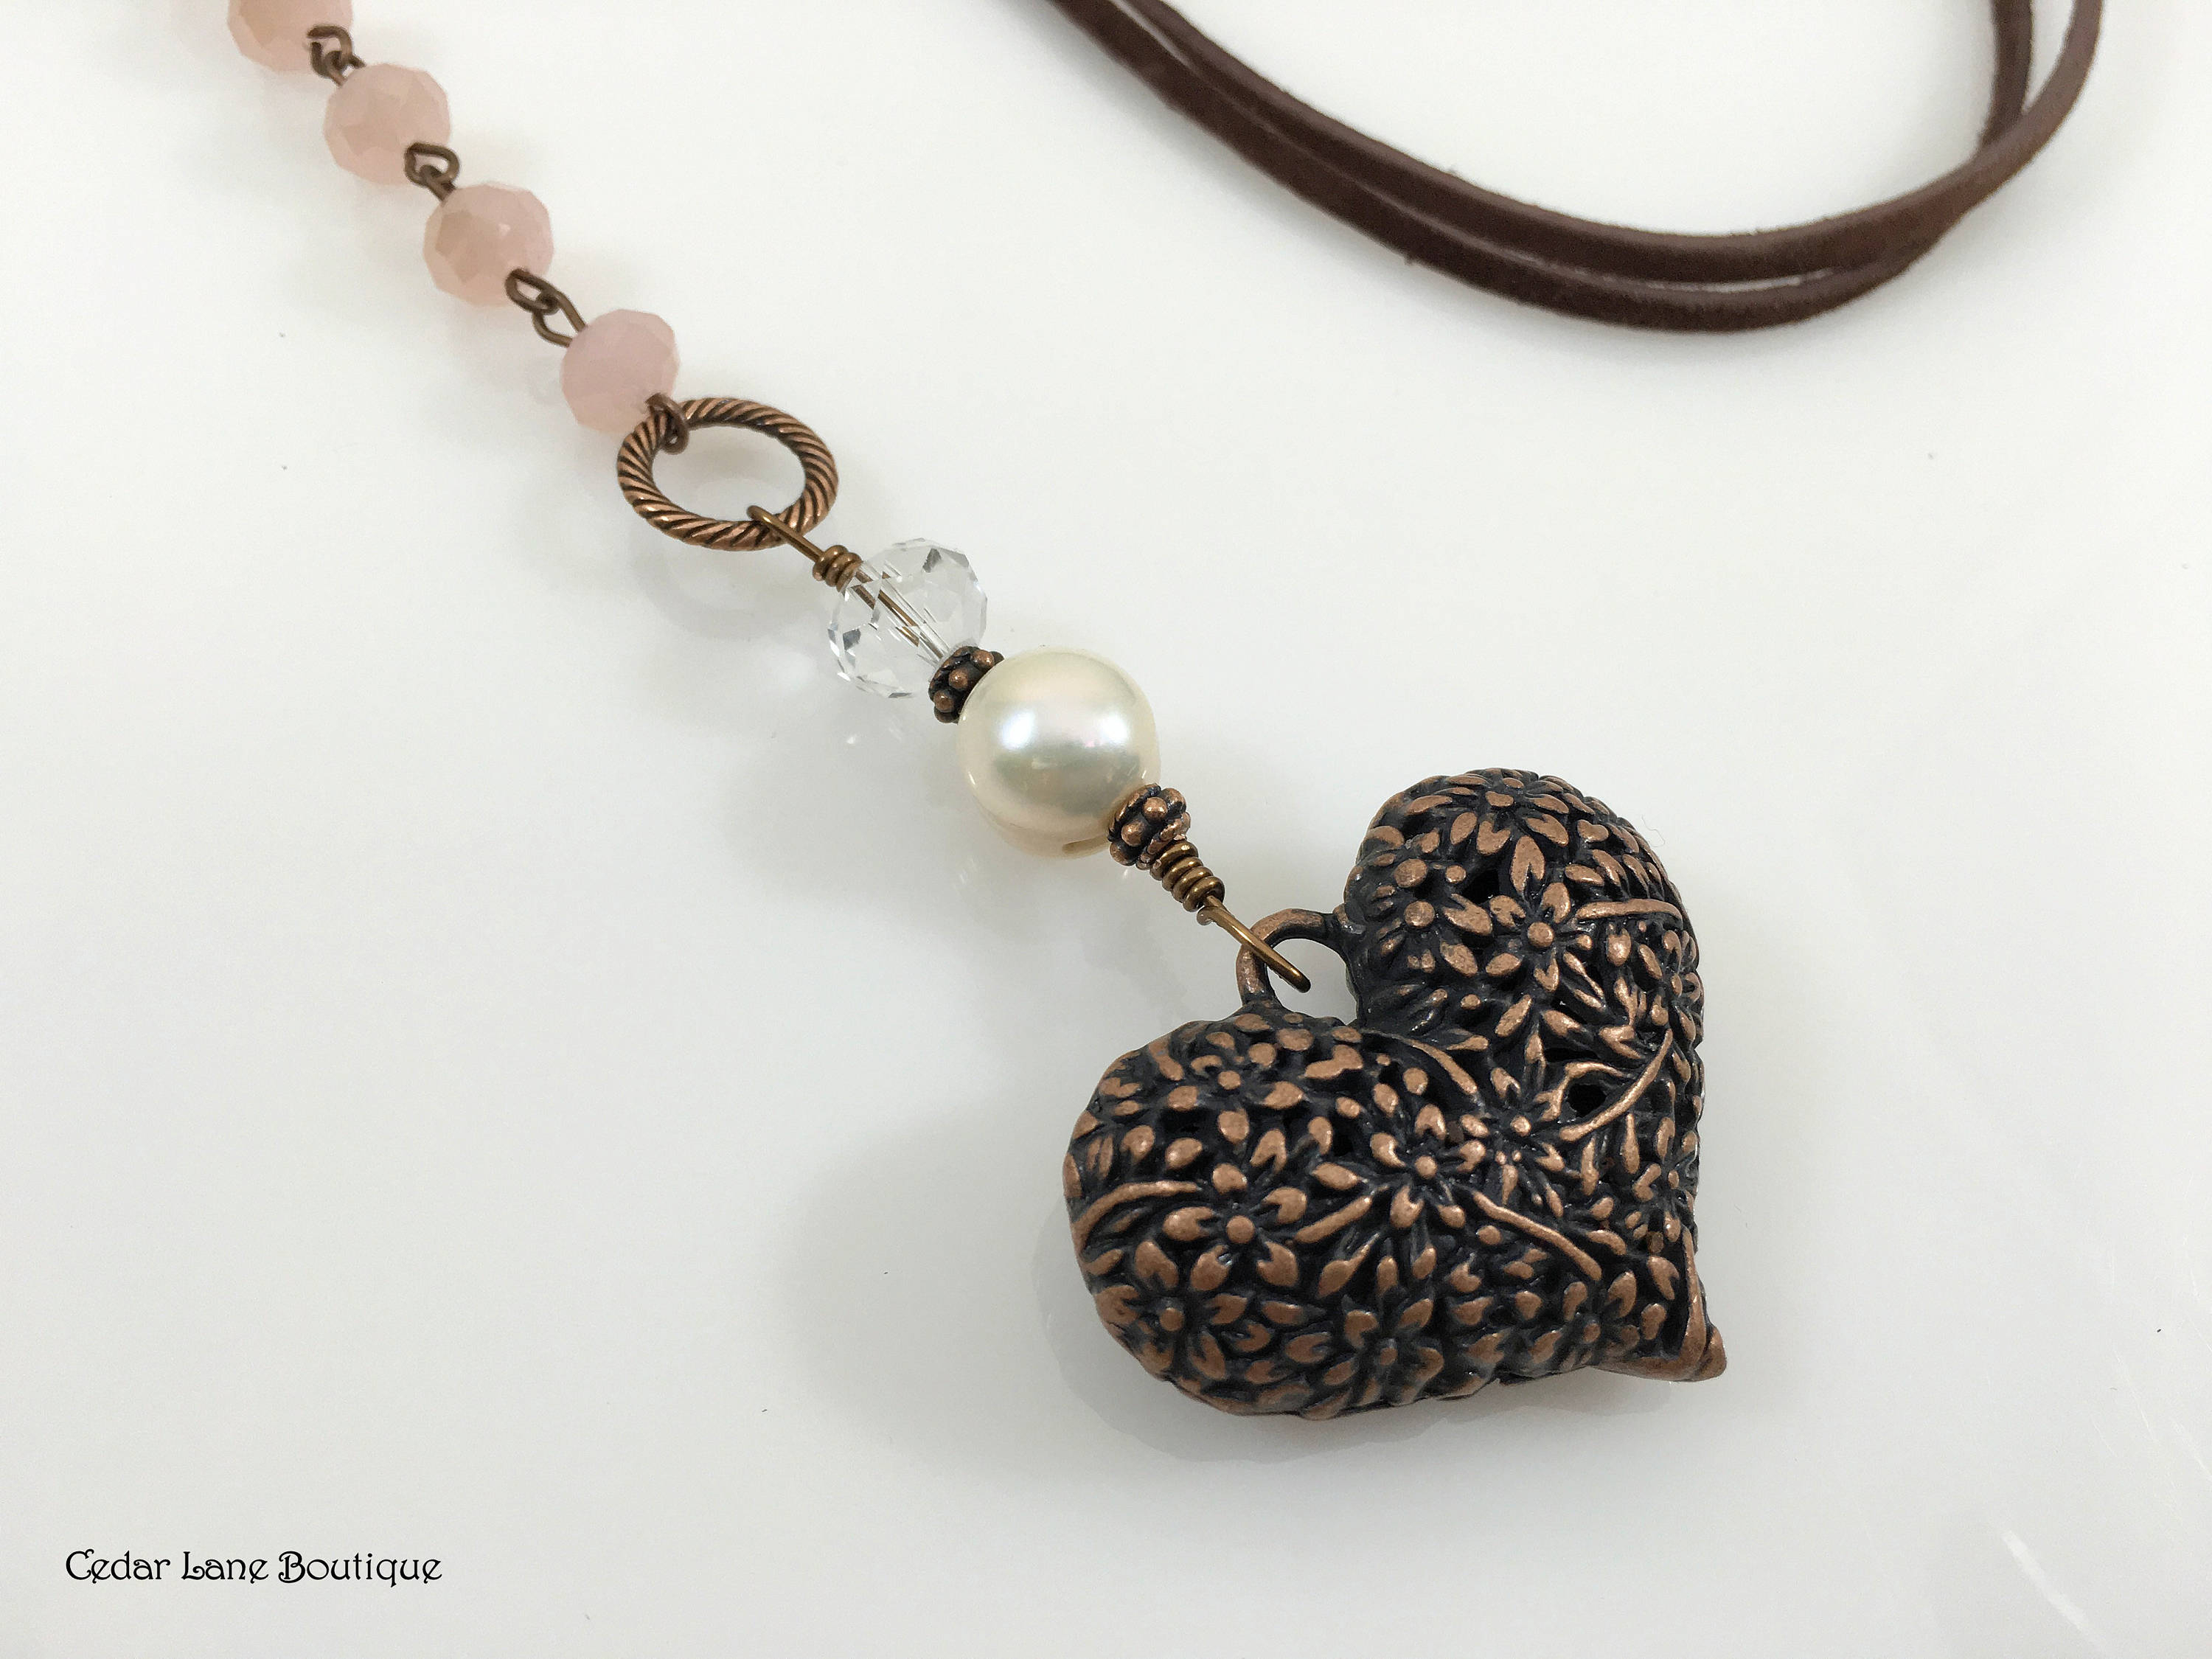 Heart Pendant Necklace/suede Long Necklace/pink Crystal Bead Chain/copper  Heart Pendant/bohemian Jewelery/casual Necklace/adjustable Length Throughout Most Up To Date Ornate Hearts Tassel Necklaces (View 8 of 25)